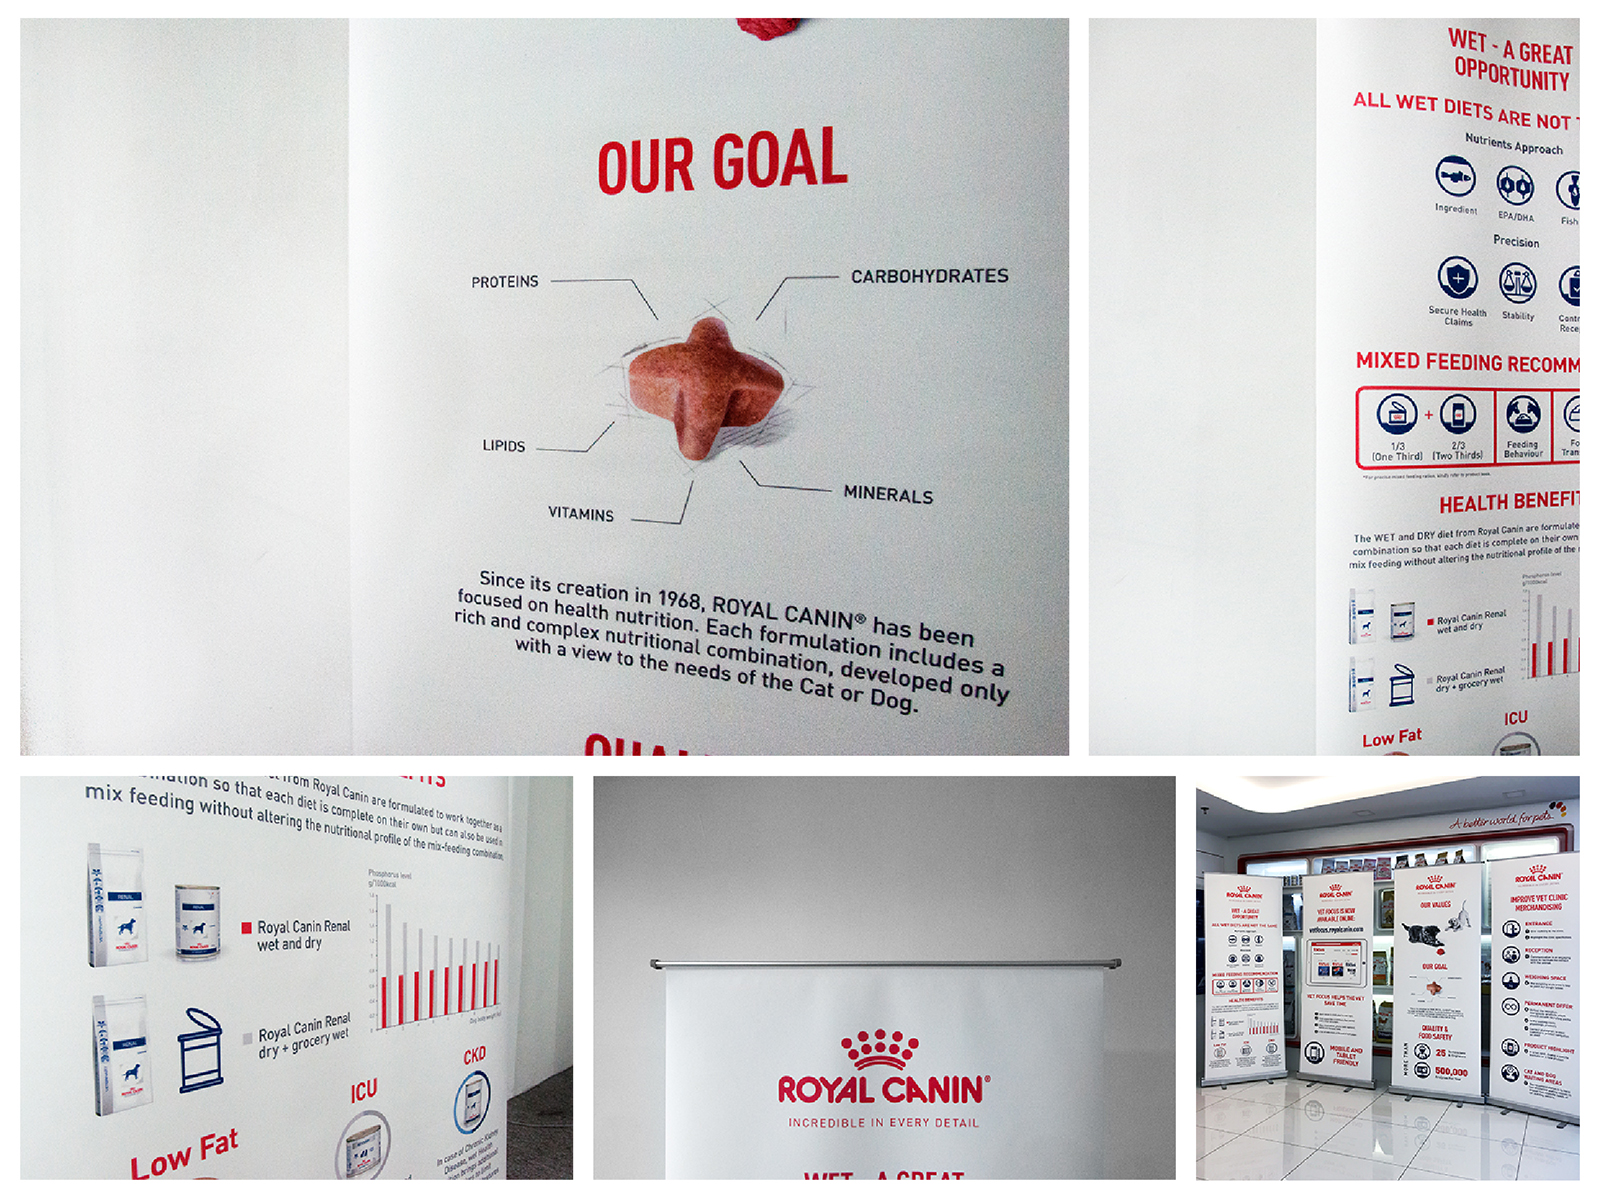 Royal Canin branding bunting that highlights their product USPs and appointed vet clinics that they work with